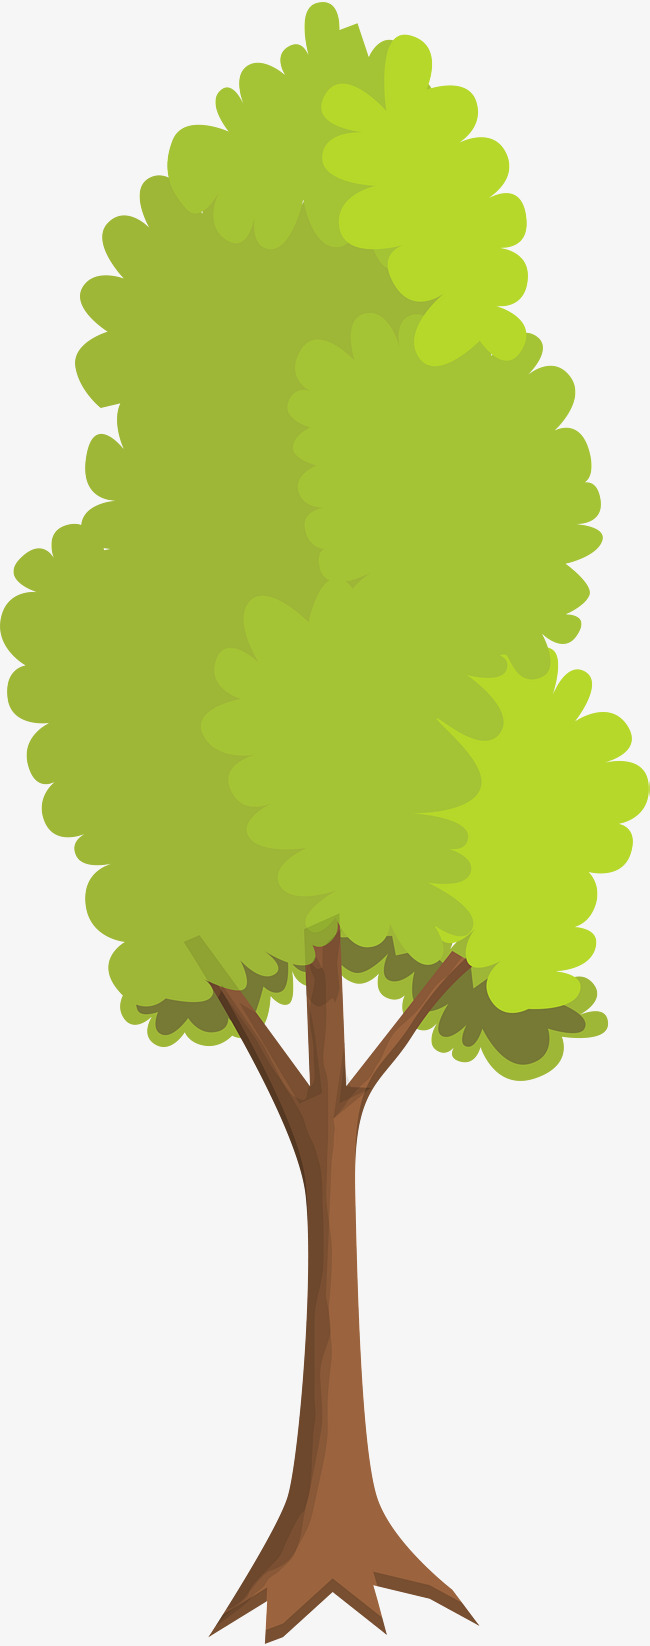 Tree Trunk Images | Free download best Tree Trunk Images on ...